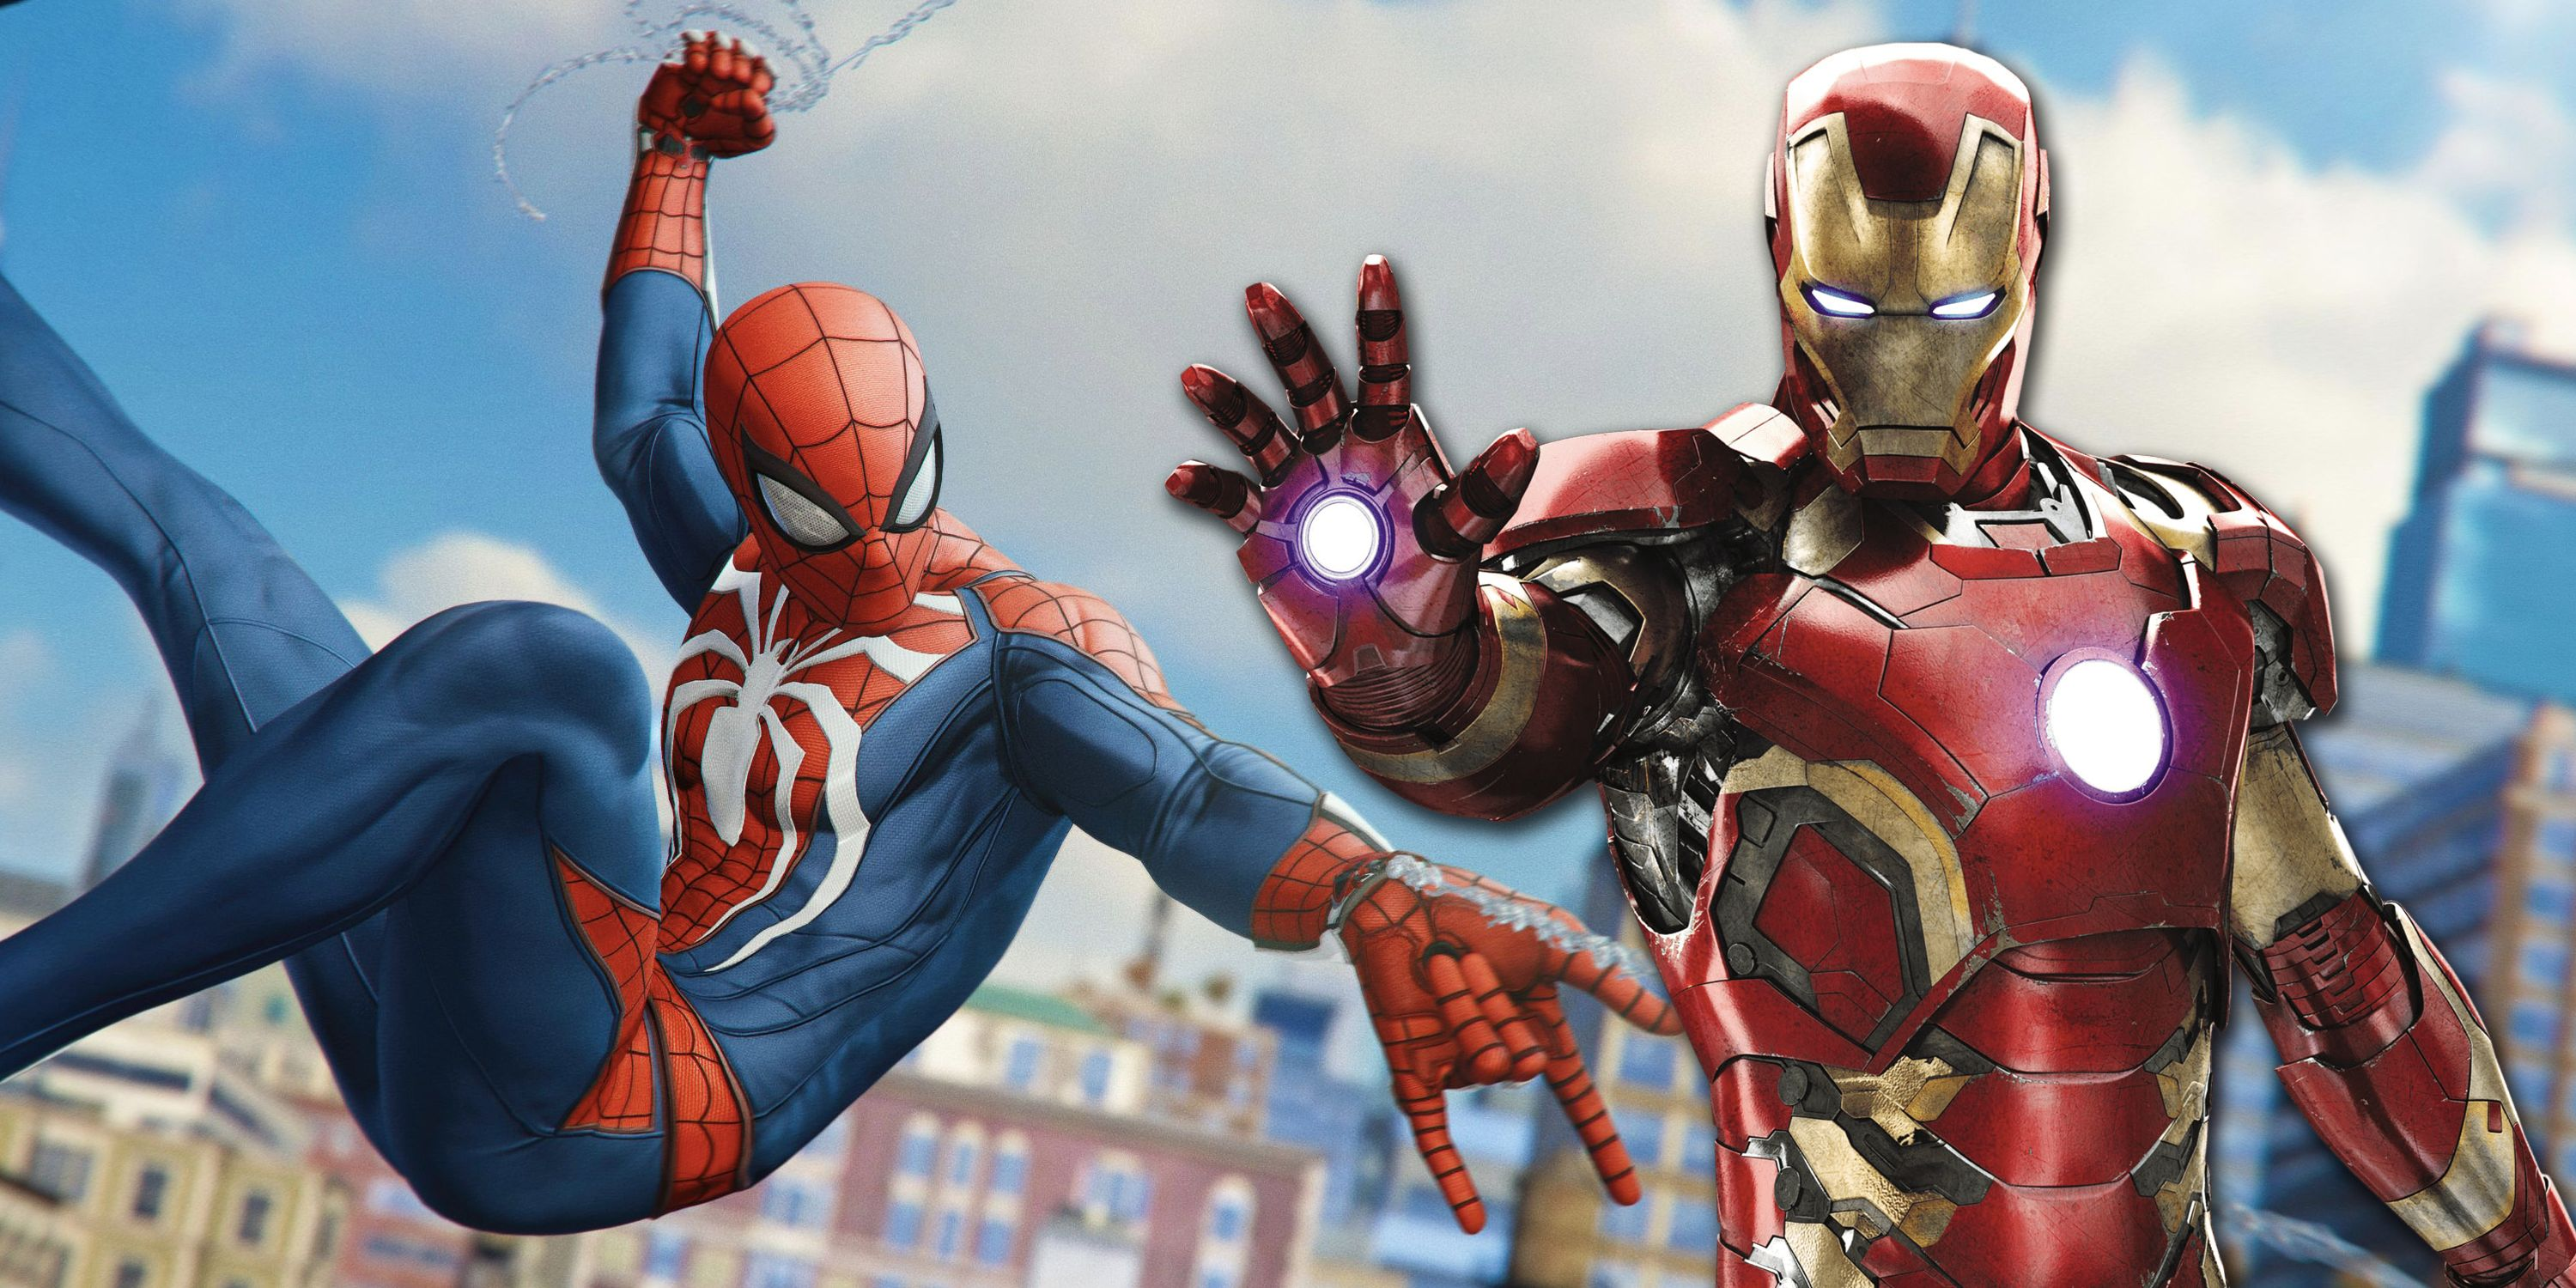 spider-man ps4: iron man would make a great xbox exclusive